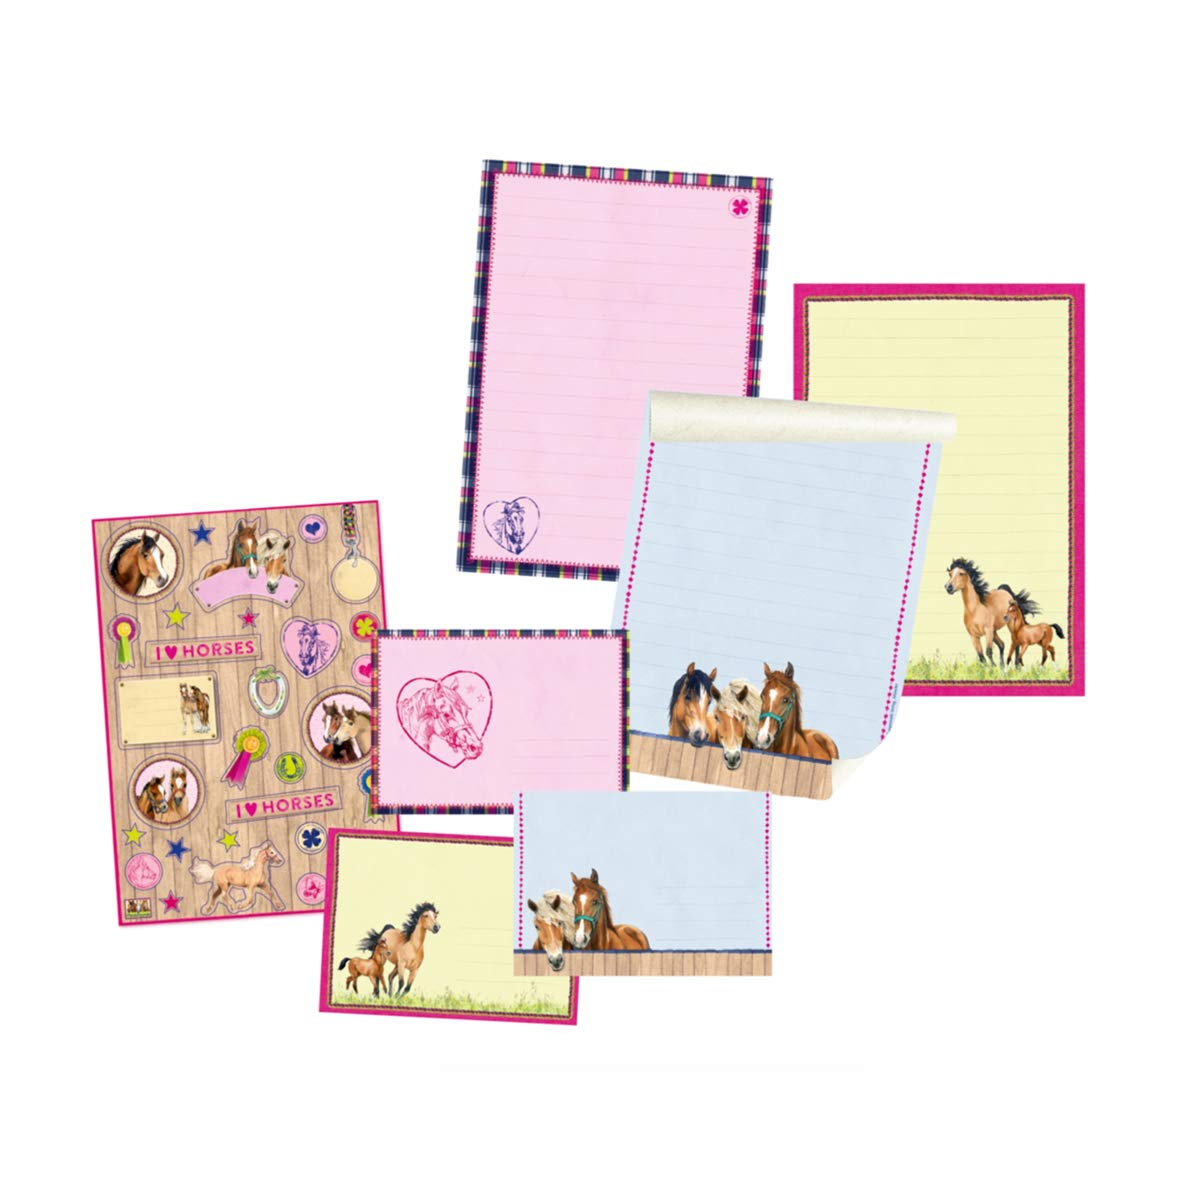 Model # 12511 Horse Friends Stationery Writing Paper Set